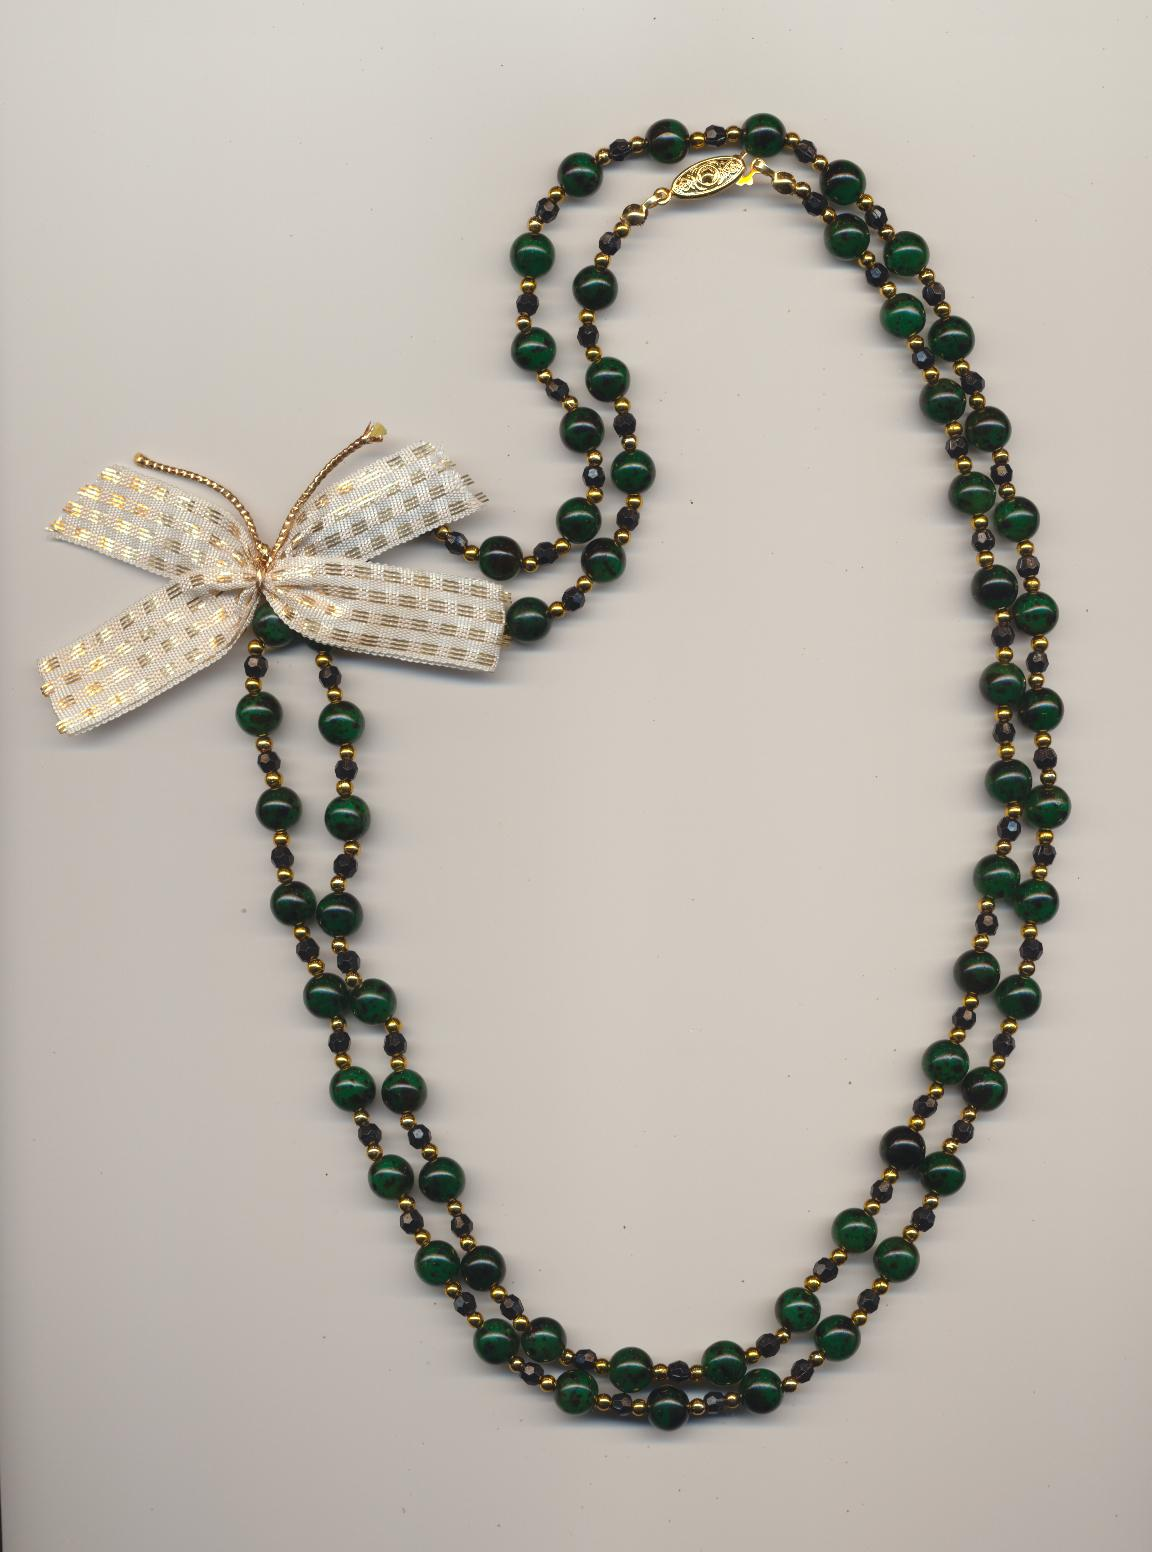 A necklace with a brooch with flair